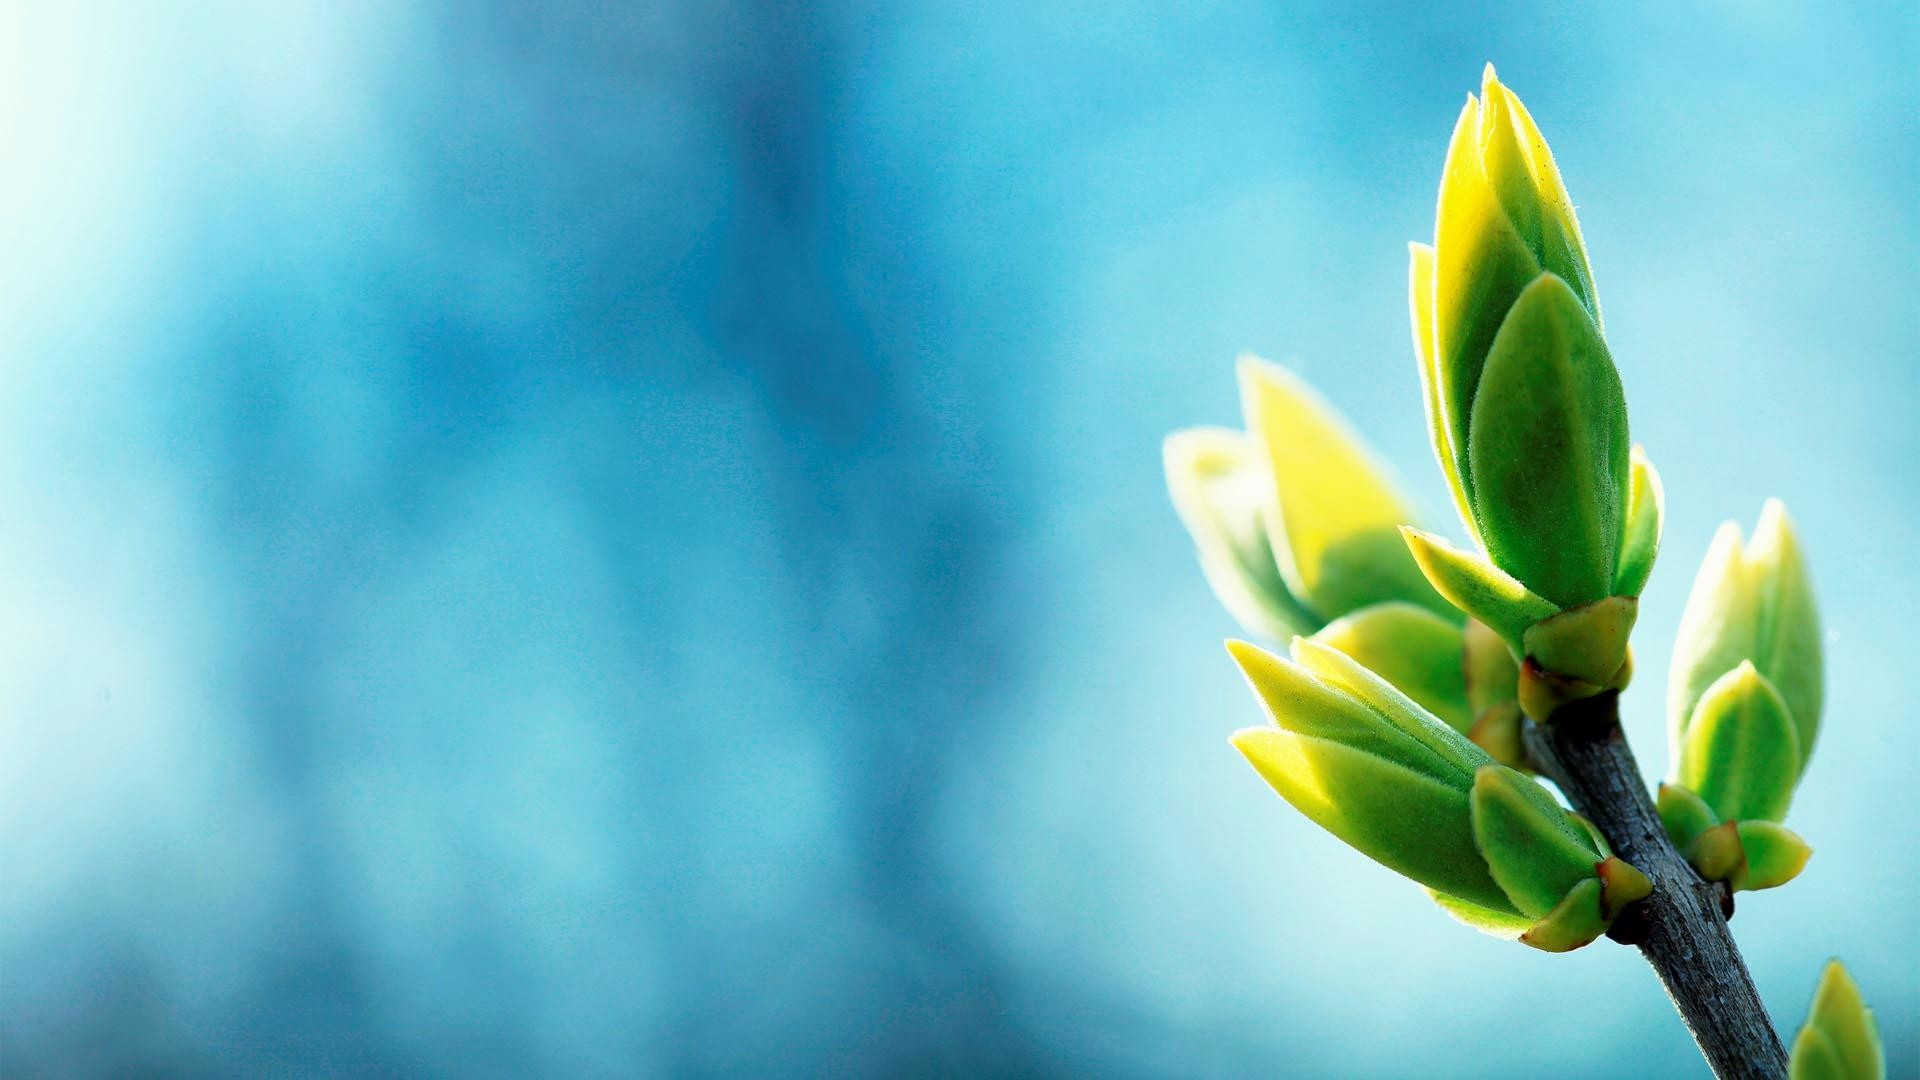 wallpaper.wiki-Blue-and-green-Calming-Backgrounds-PIC-